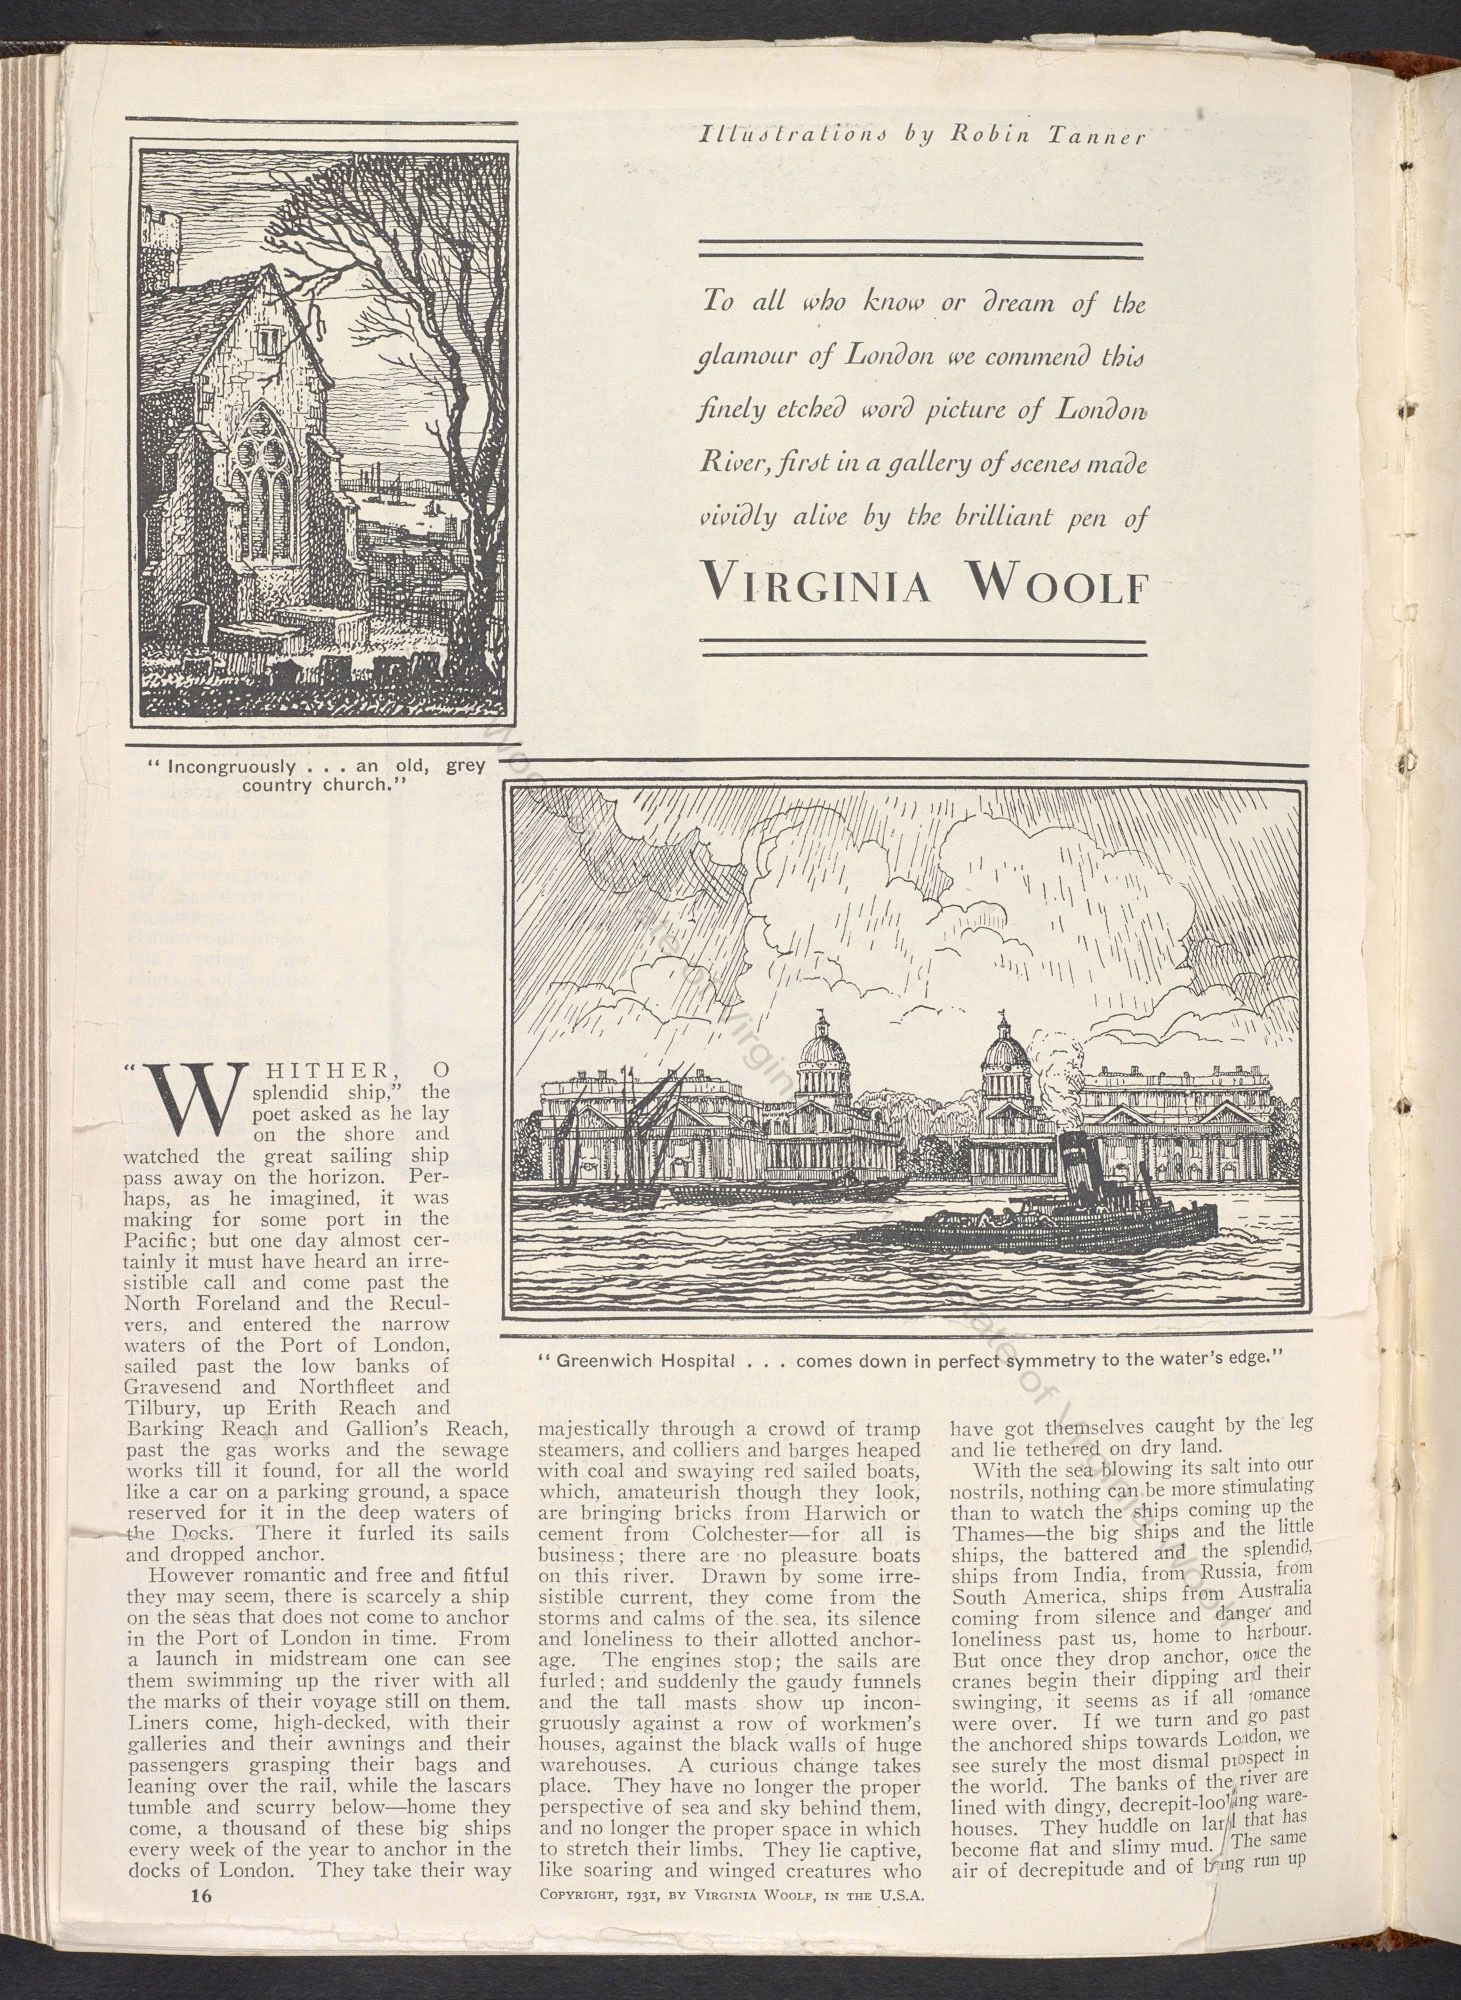 The London Scene Essays By Virginia Woolf From Good Housekeeping  The London Scene Essays By Virginia Woolf From Good Housekeeping Magazine   The British Library Writing Service C also Topics For A Proposal Essay  Online Will Writing Service Reviews